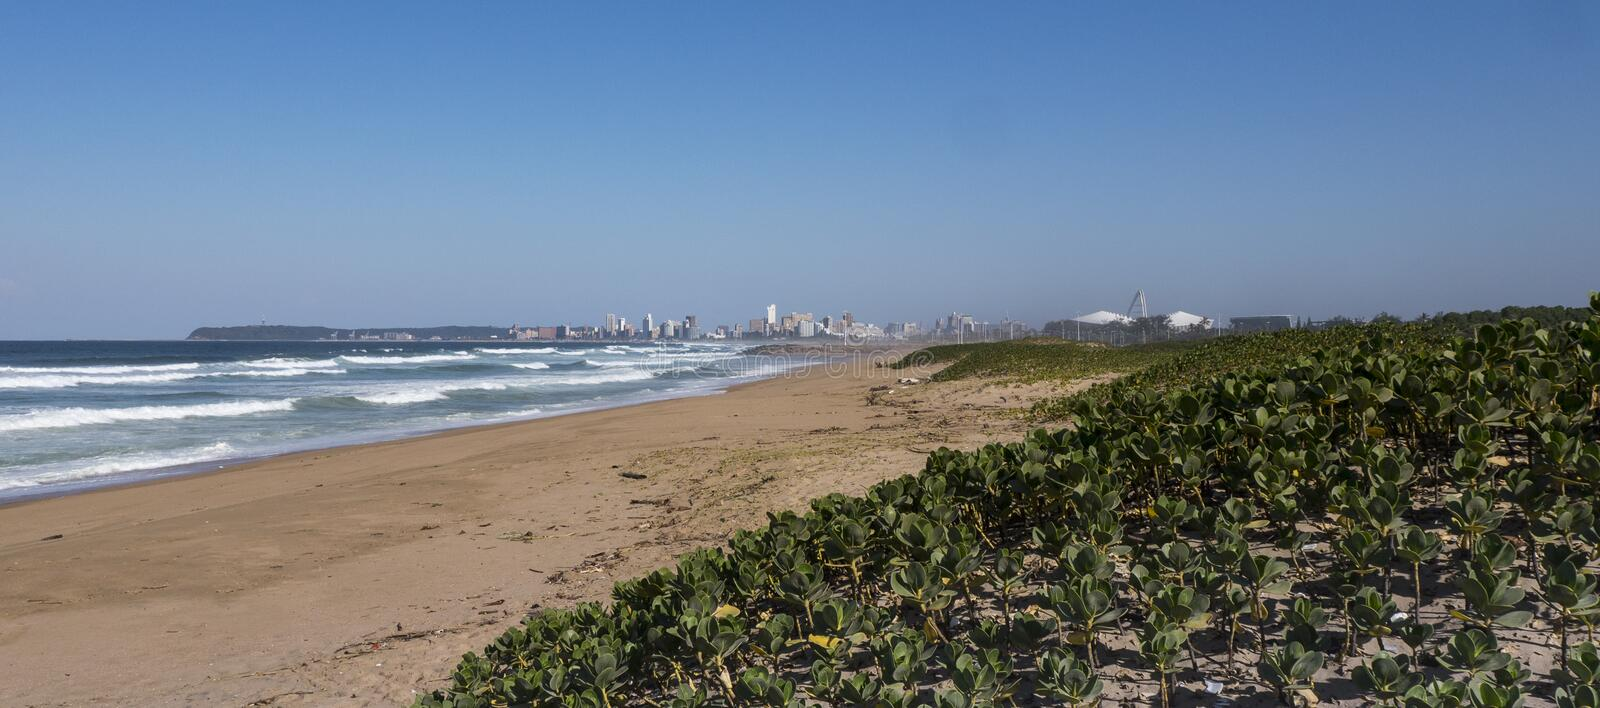 Durban, South Africa skyline from a northern beach stock image